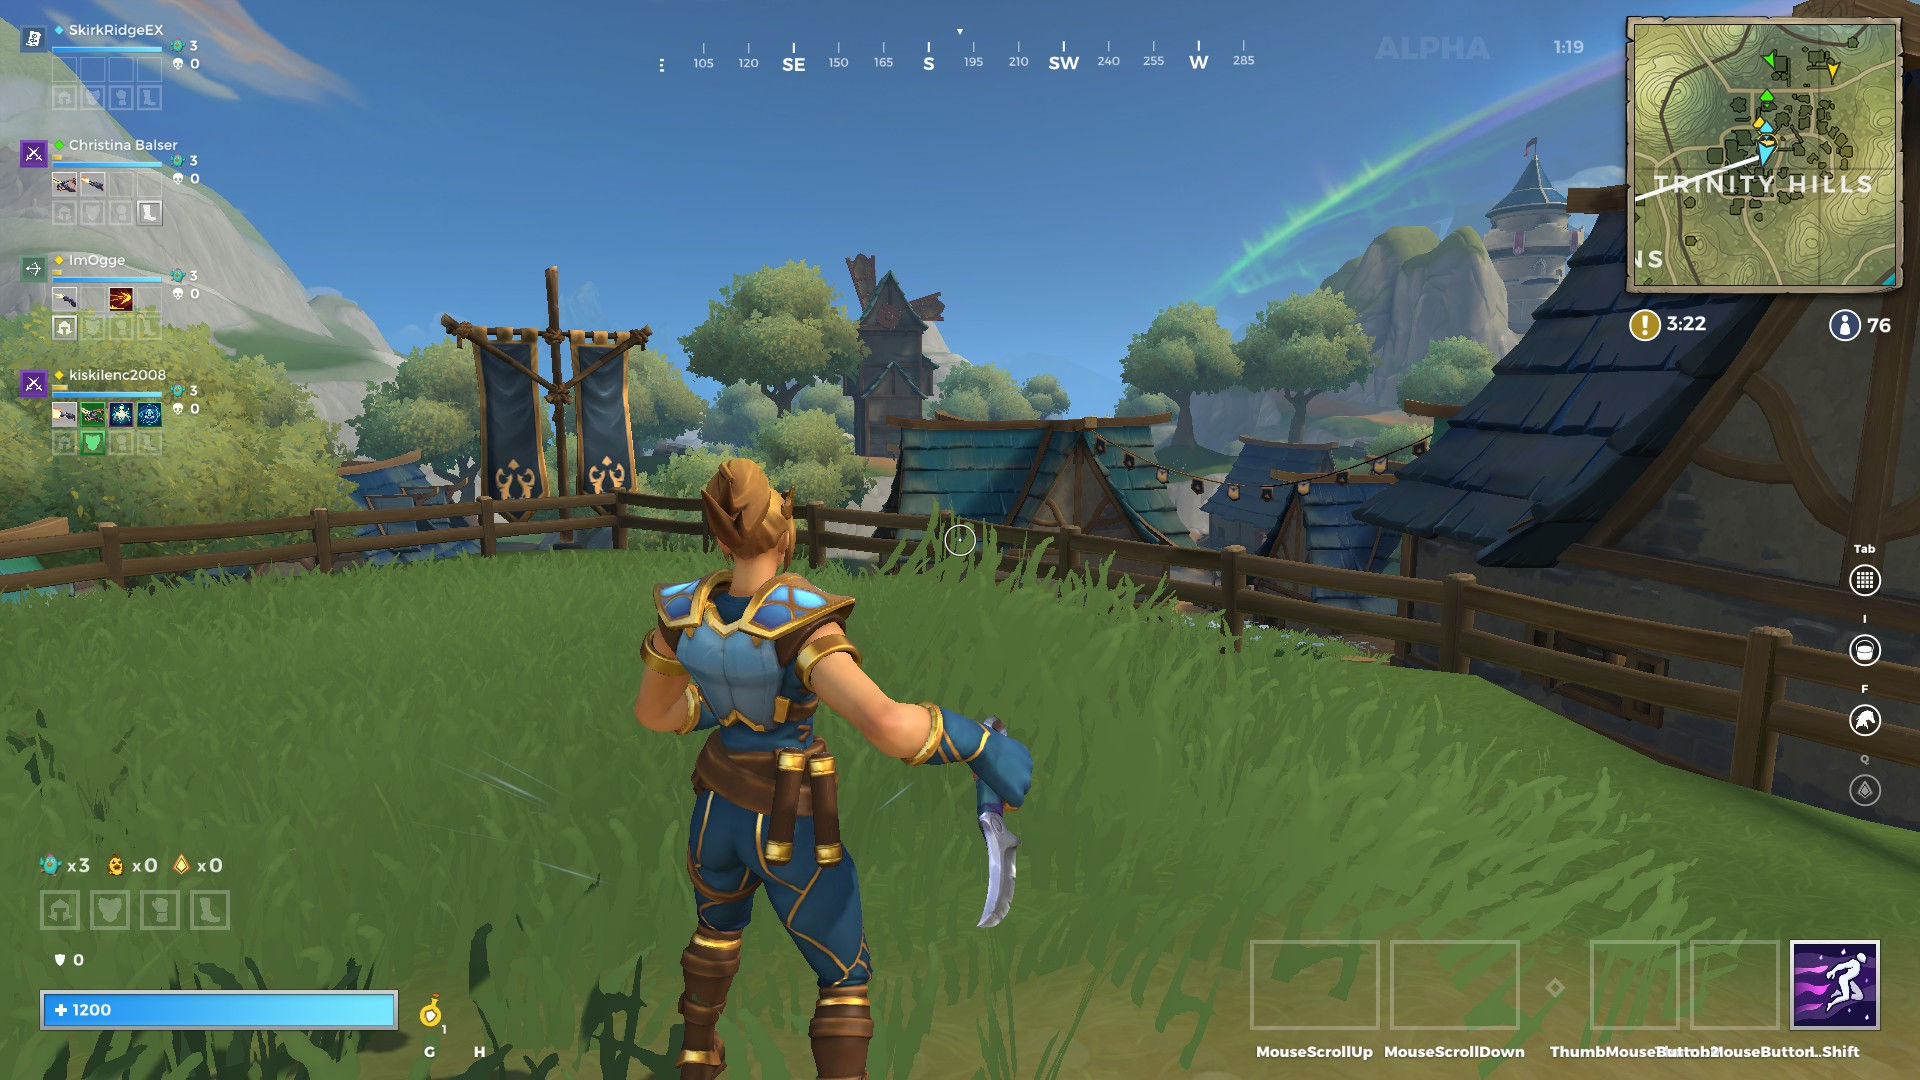 A view of Trinity Hills in Realm Royale